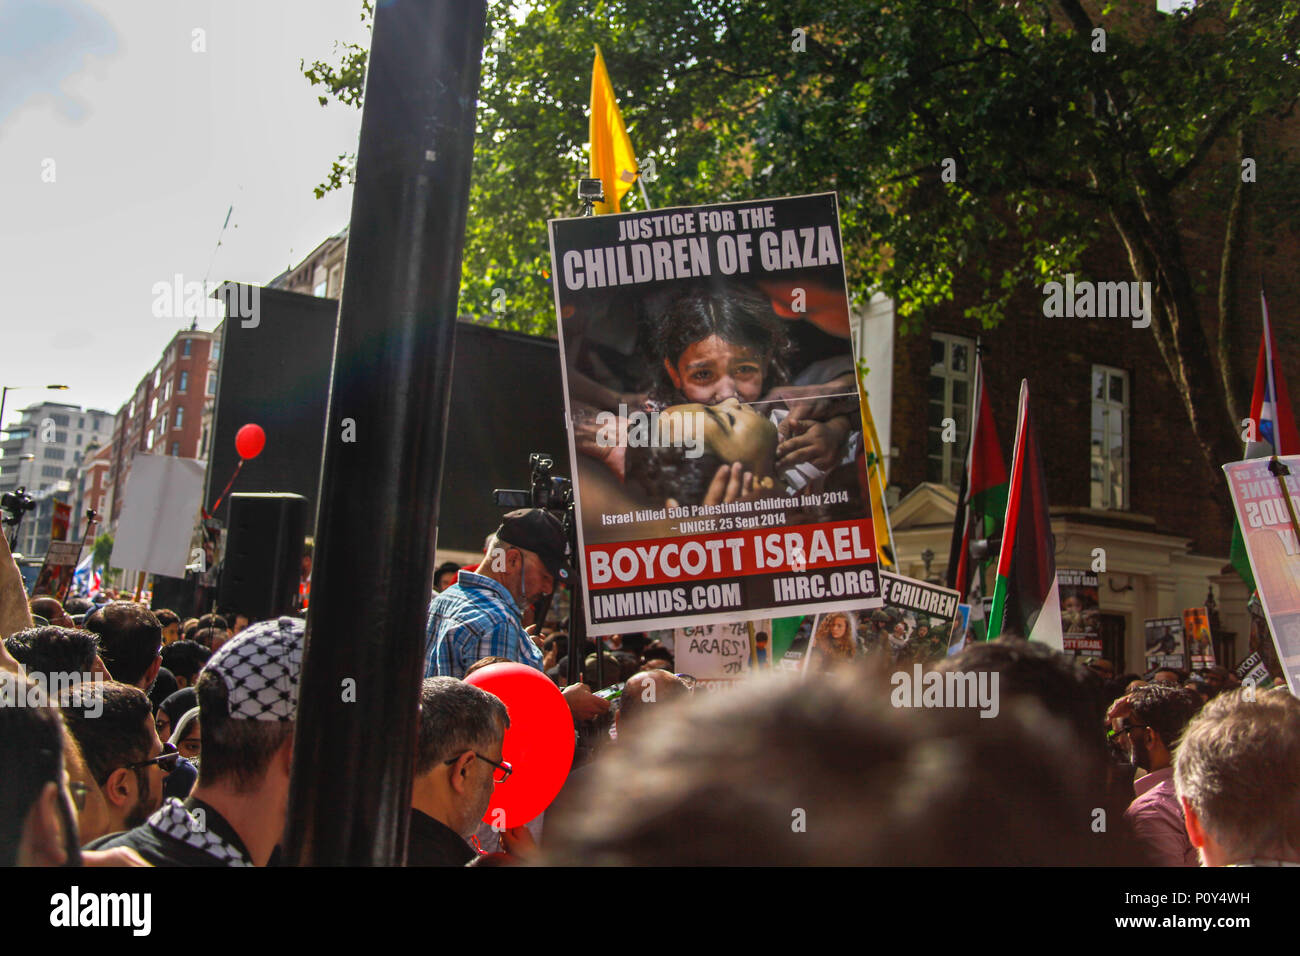 London, UK. 10th June 2018. Palestinian Supporter at the Al-Quds March Credit: Alex Cavendish/Alamy Live News - Stock Image